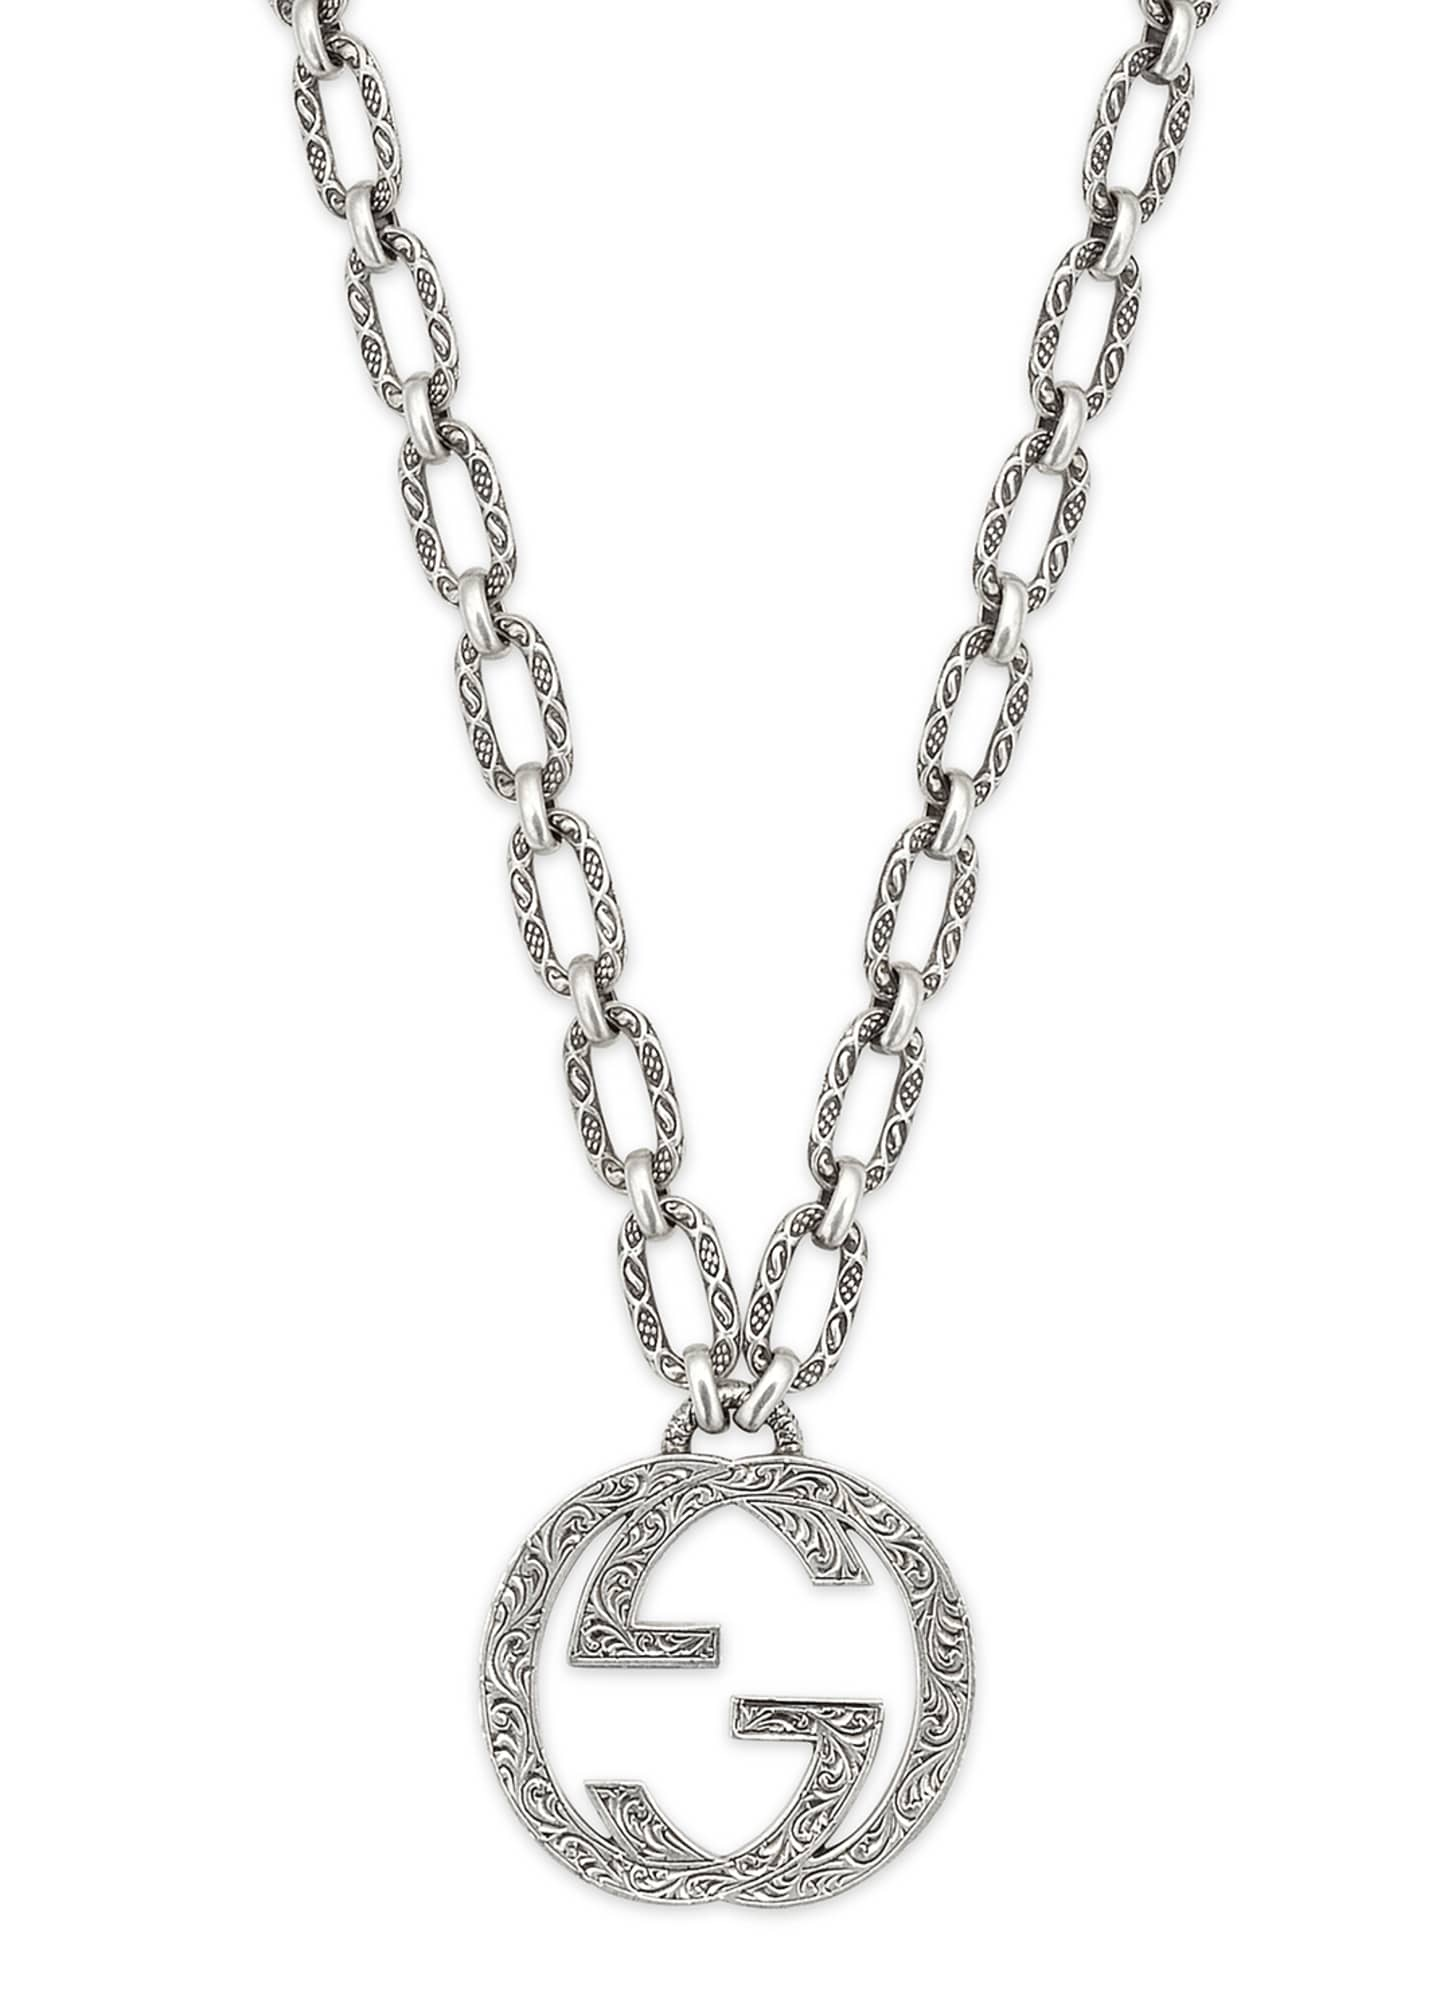 Gucci Men's Interlocking G Pendant Necklace, 36